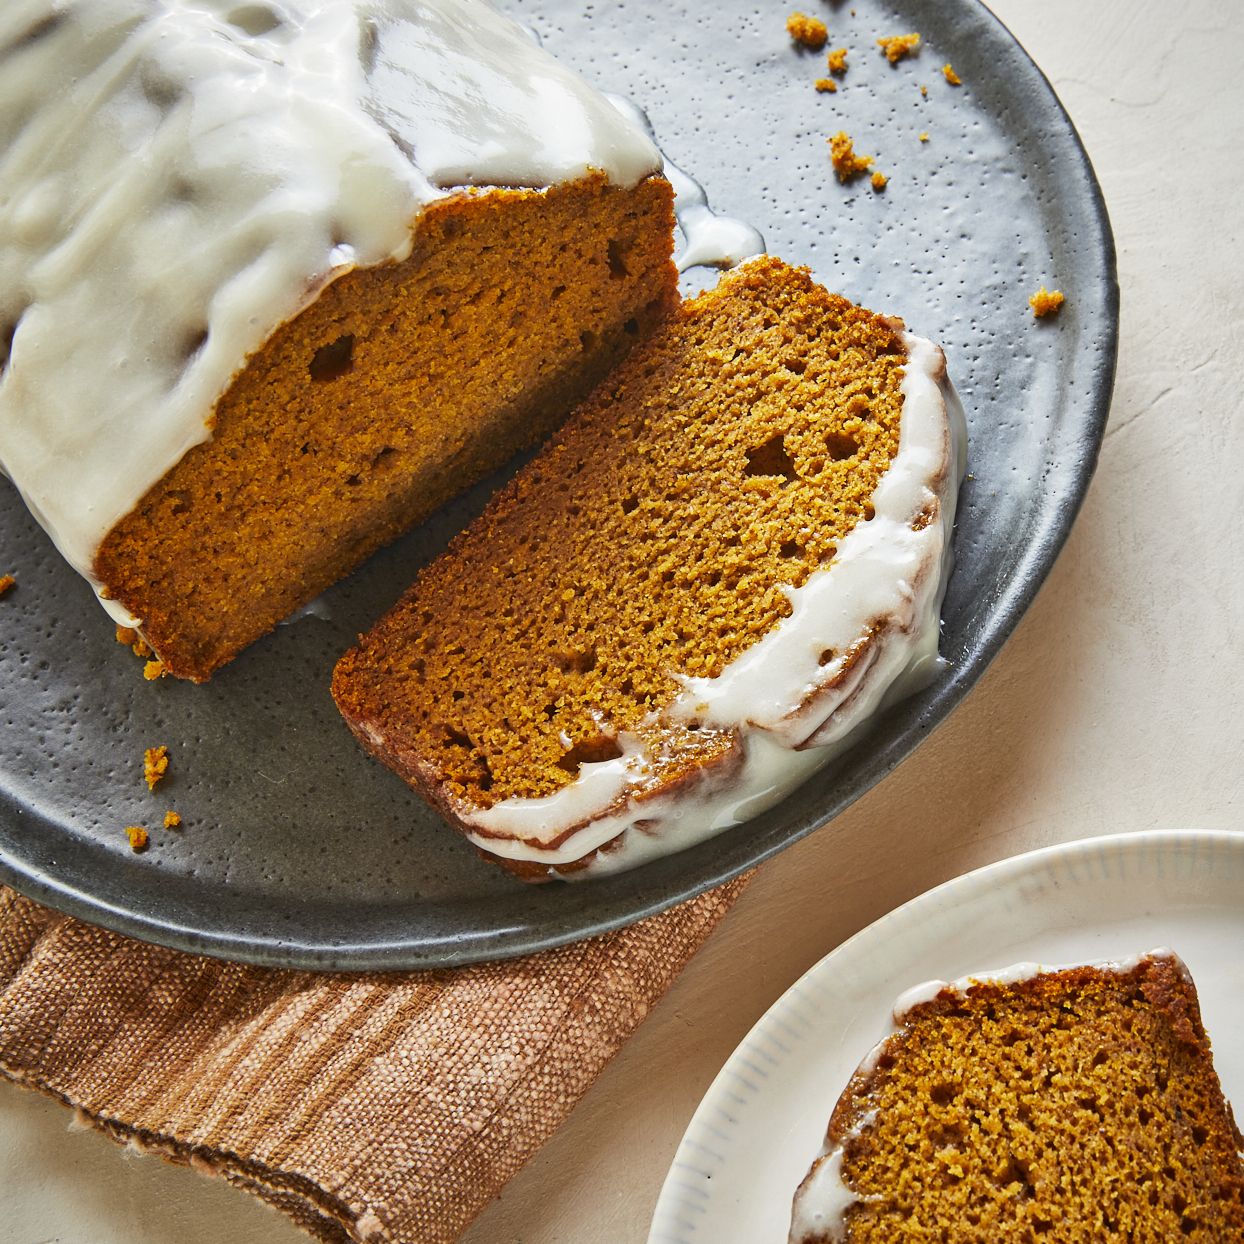 This pumpkin spice bread recipe is a snap to pull together. Pumpkin puree and maple syrup add sweetness to help cut down the amount of added sugar while ensuring this healthy loaf stays moist and tender. This easy quick bread is finished off with a sweetened cream cheese spread over the top to complement the spices.